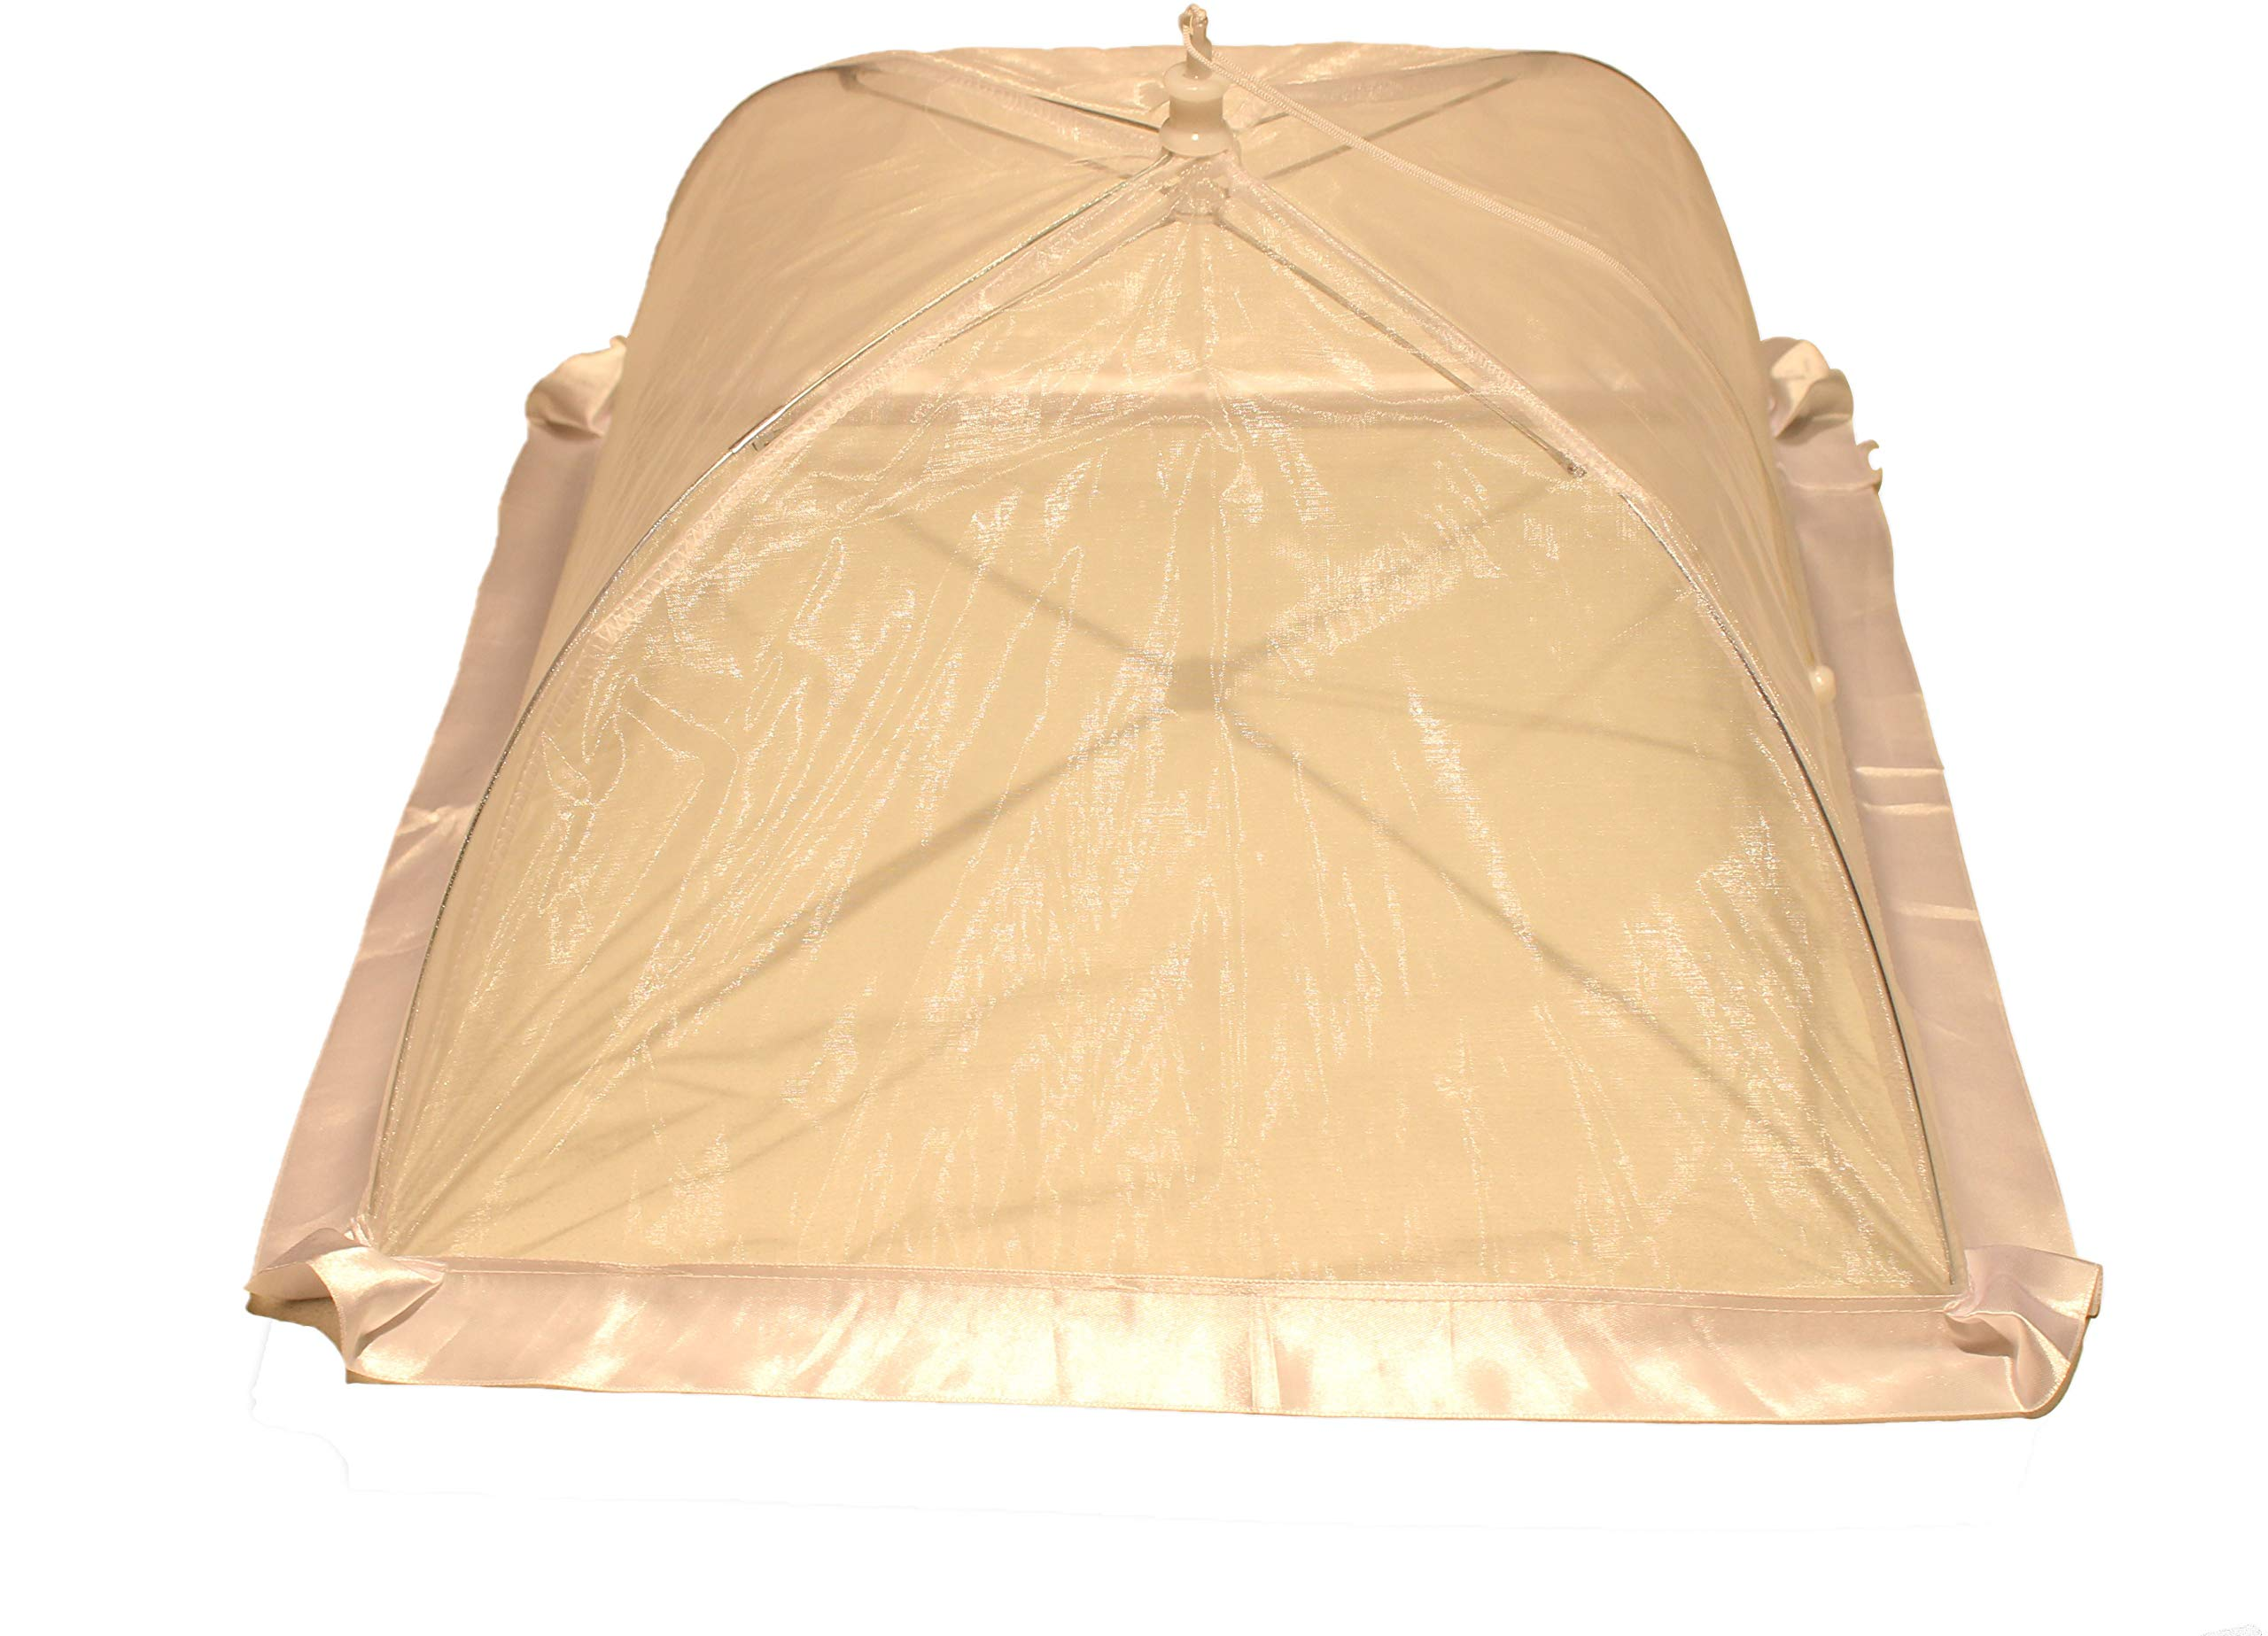 Quality Collapsible Mesh Food Cover Tent │ Keeps Flies And Bugs Off Your Food │ Great For Indoor And Outdoor Use